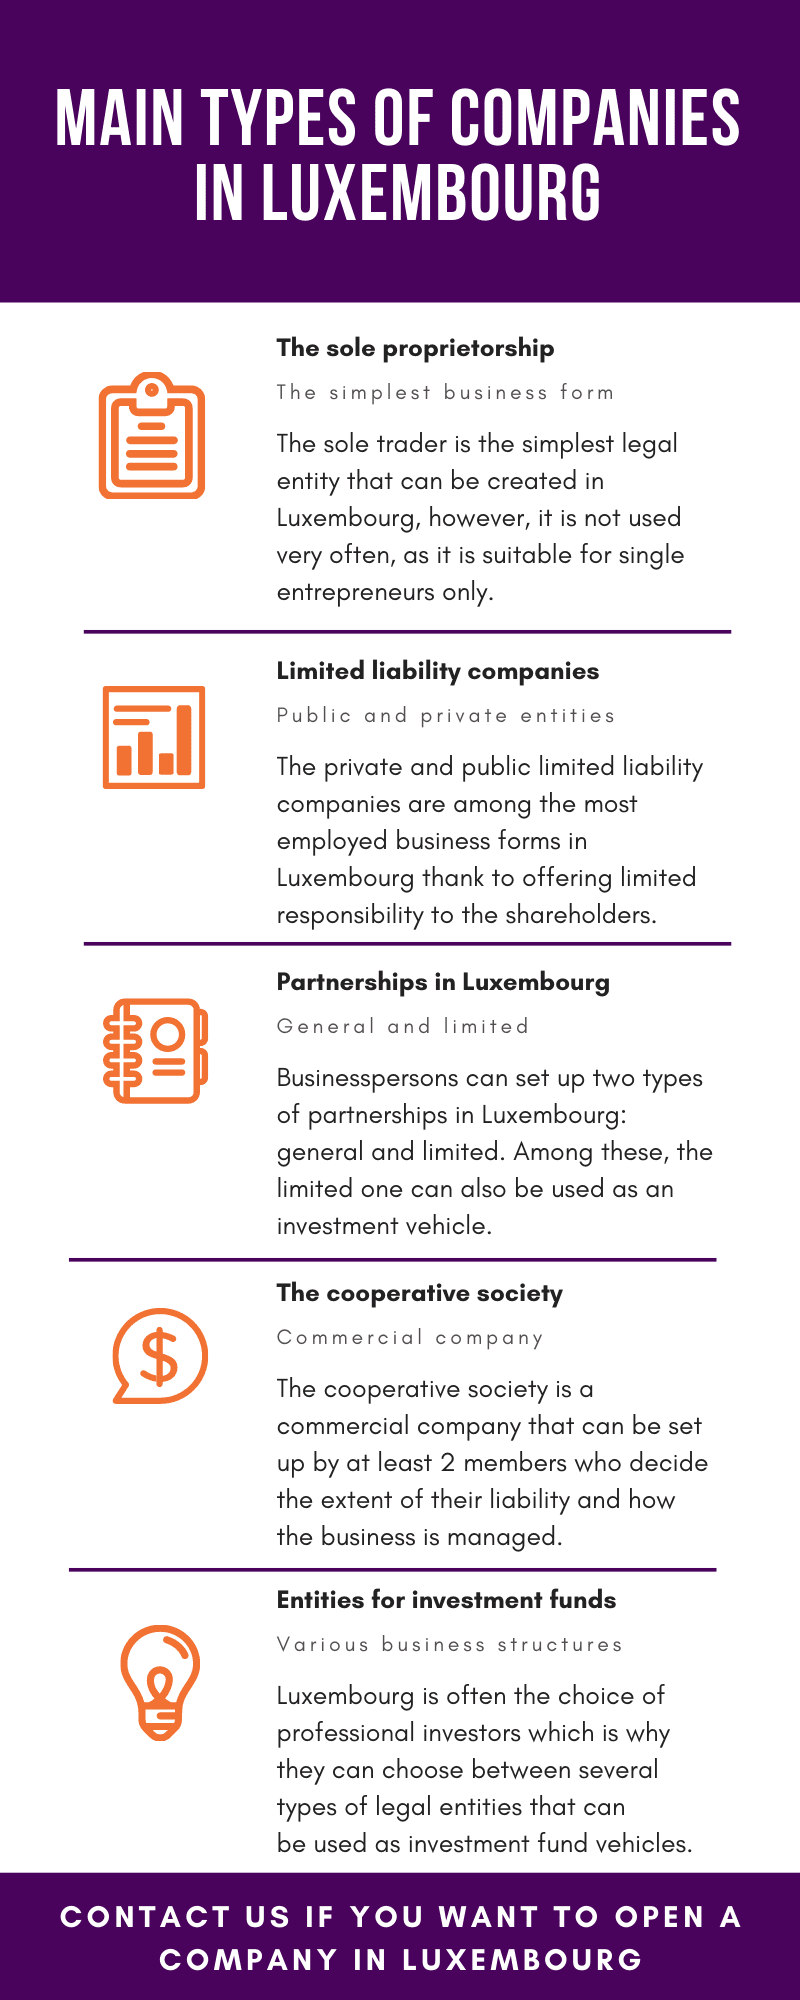 Main Types of Companies in Luxembourg